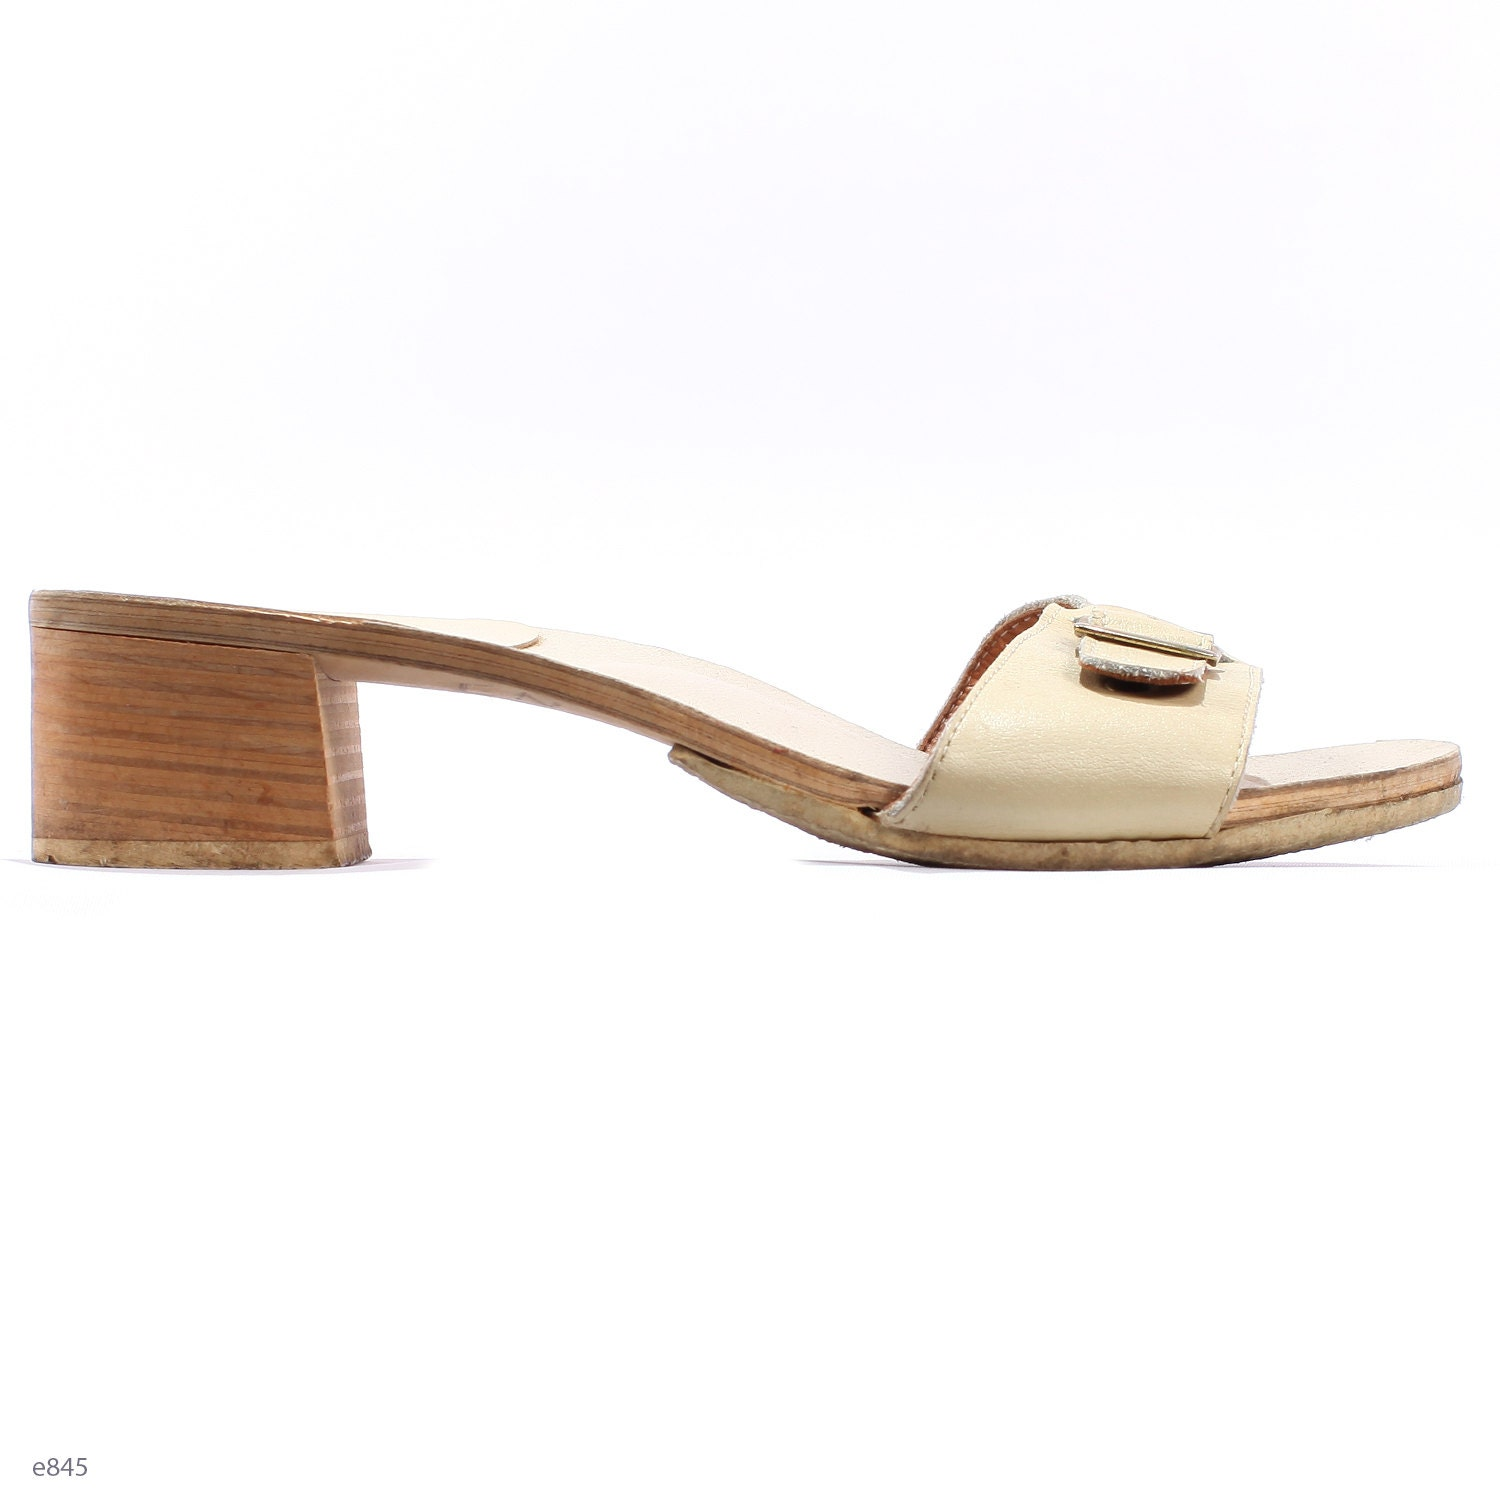 Vintage 80s Mules Wooden Sole Swedish Clogs Wedges Leather